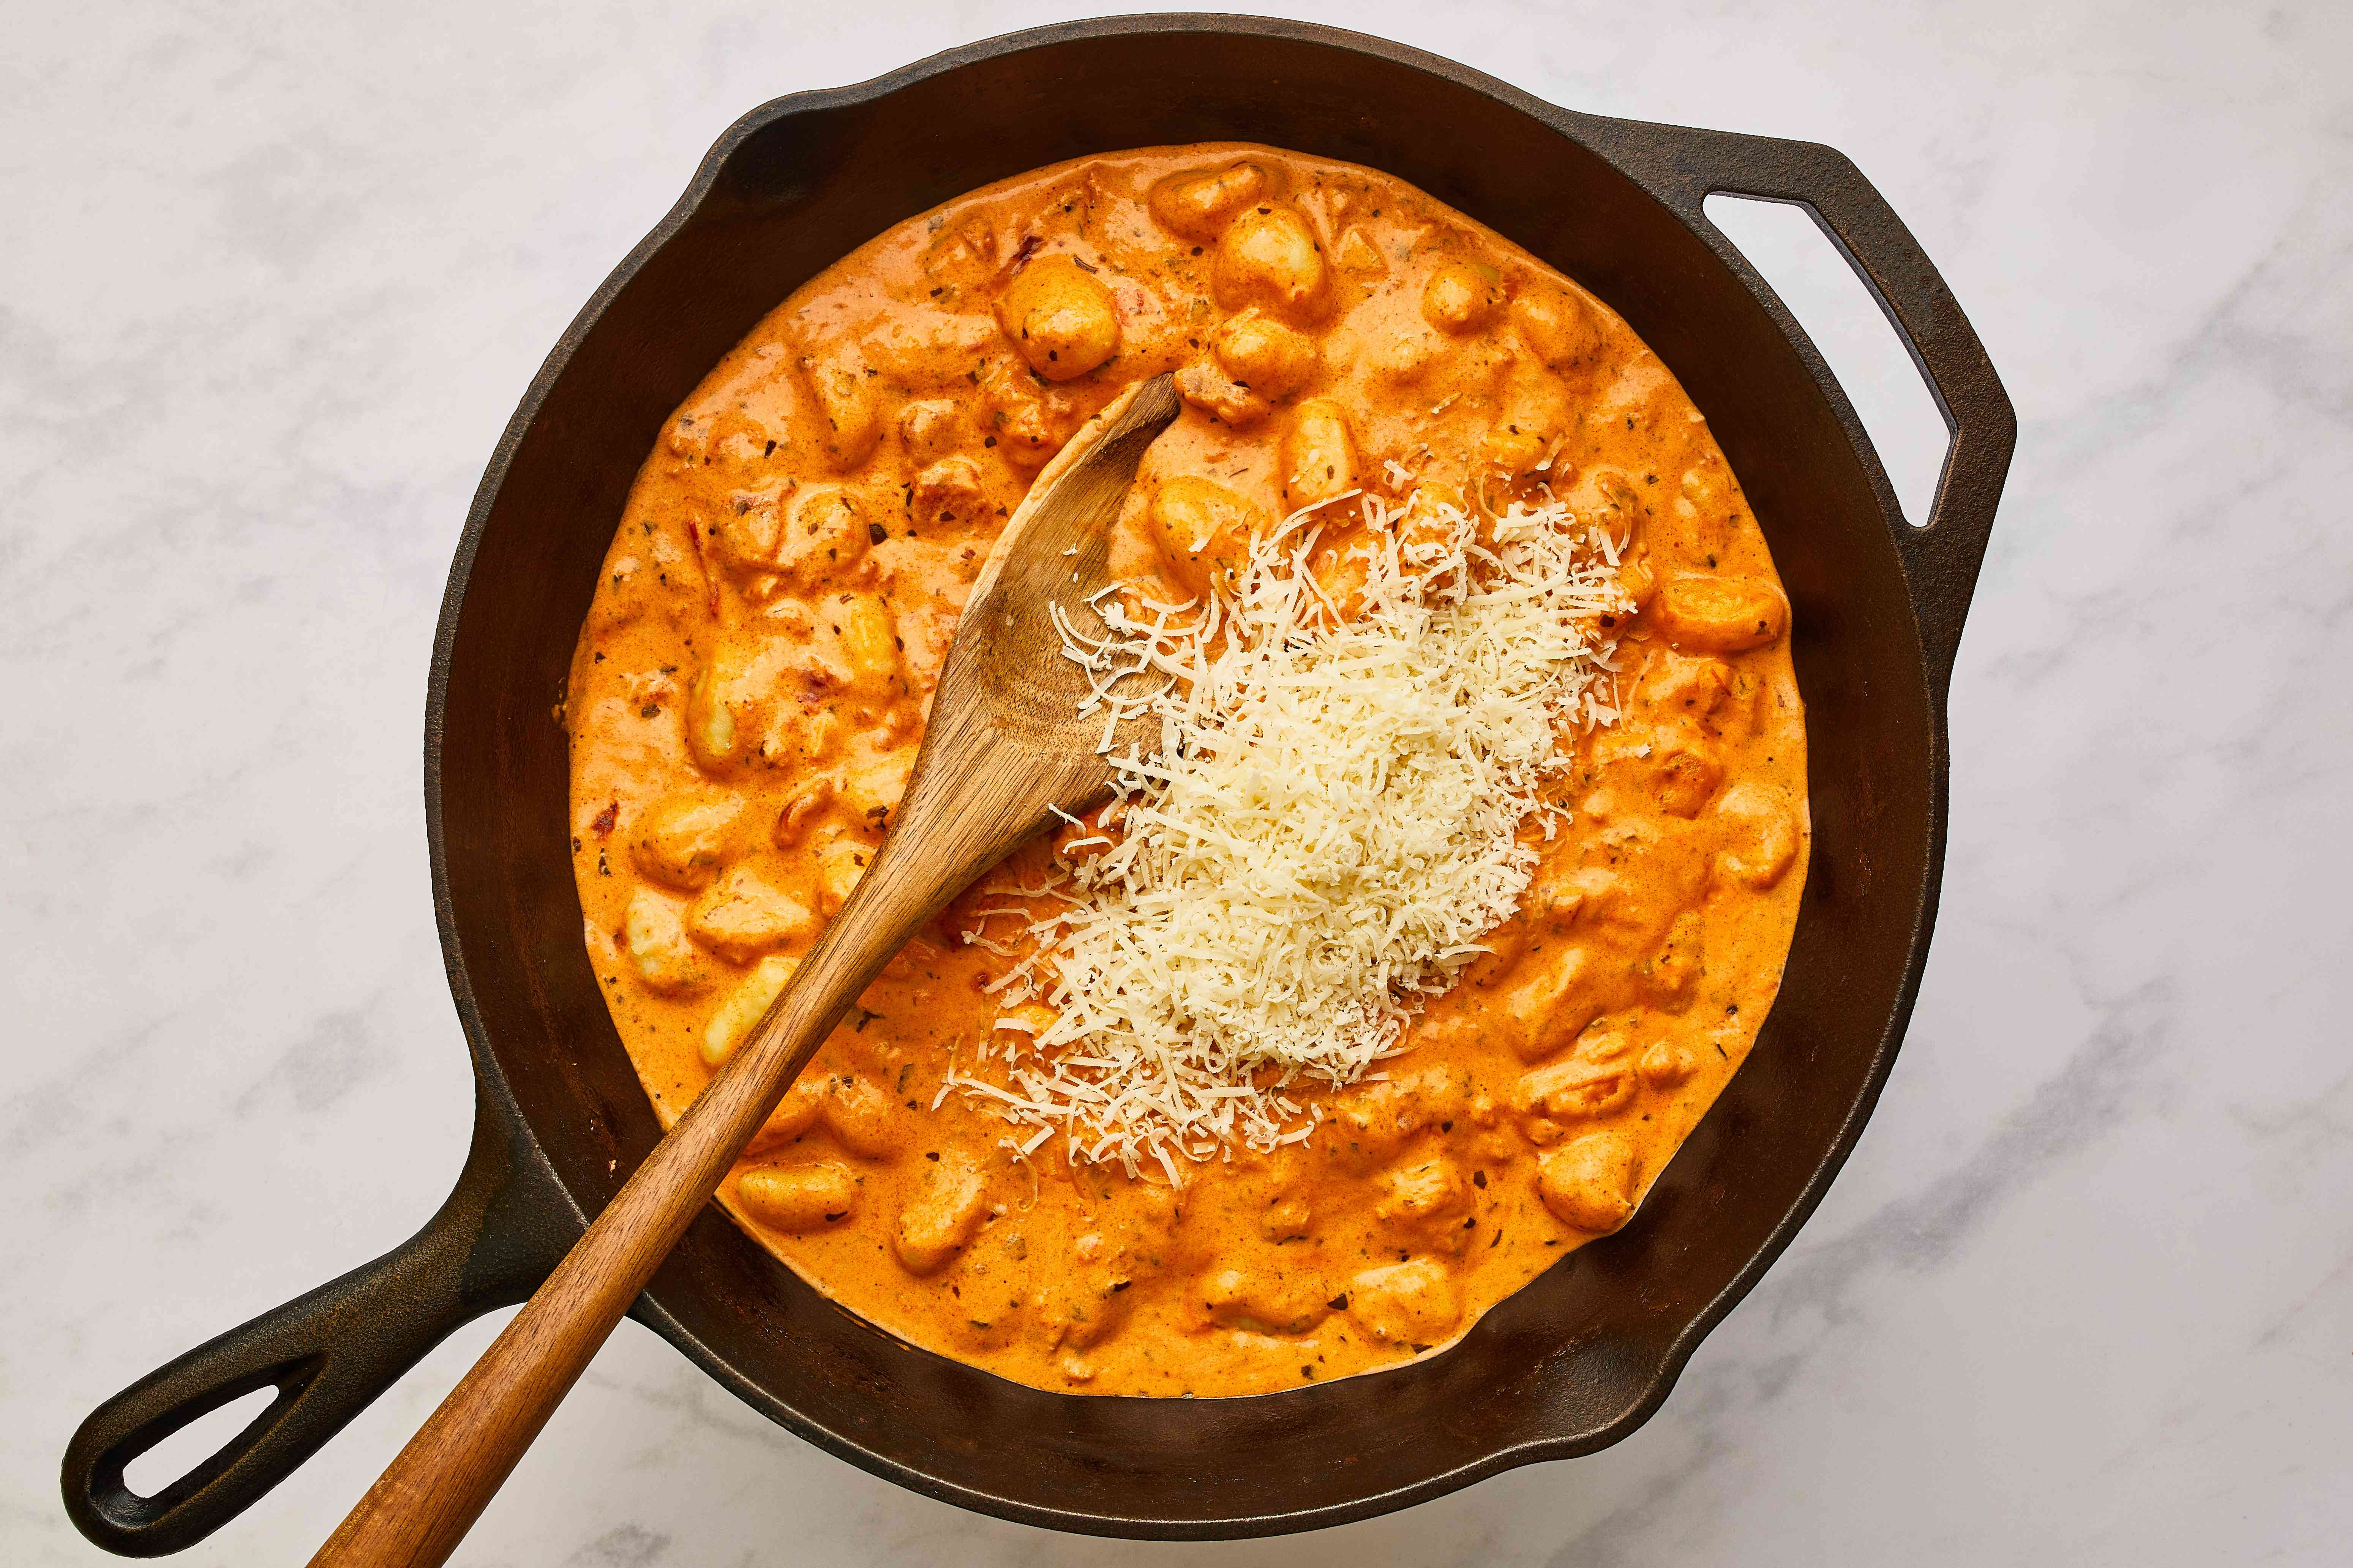 Add the freshly grated Parmigiano-Reggiano to the sauce and gnocchi